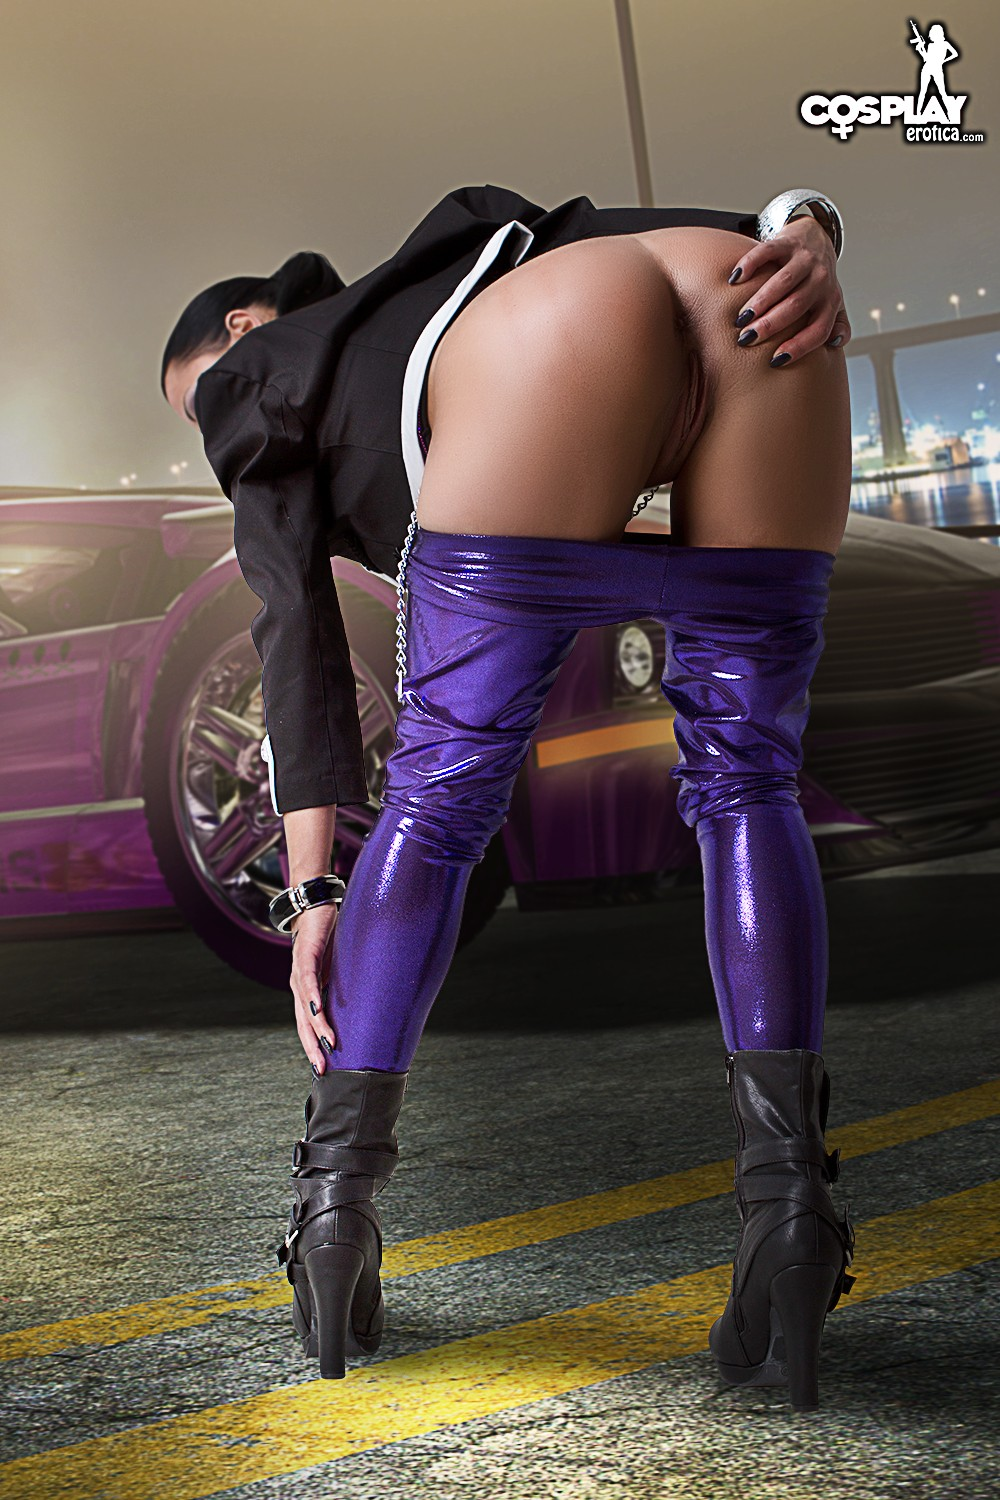 Saints row 3 shaundi fucked doggy style sexual toons